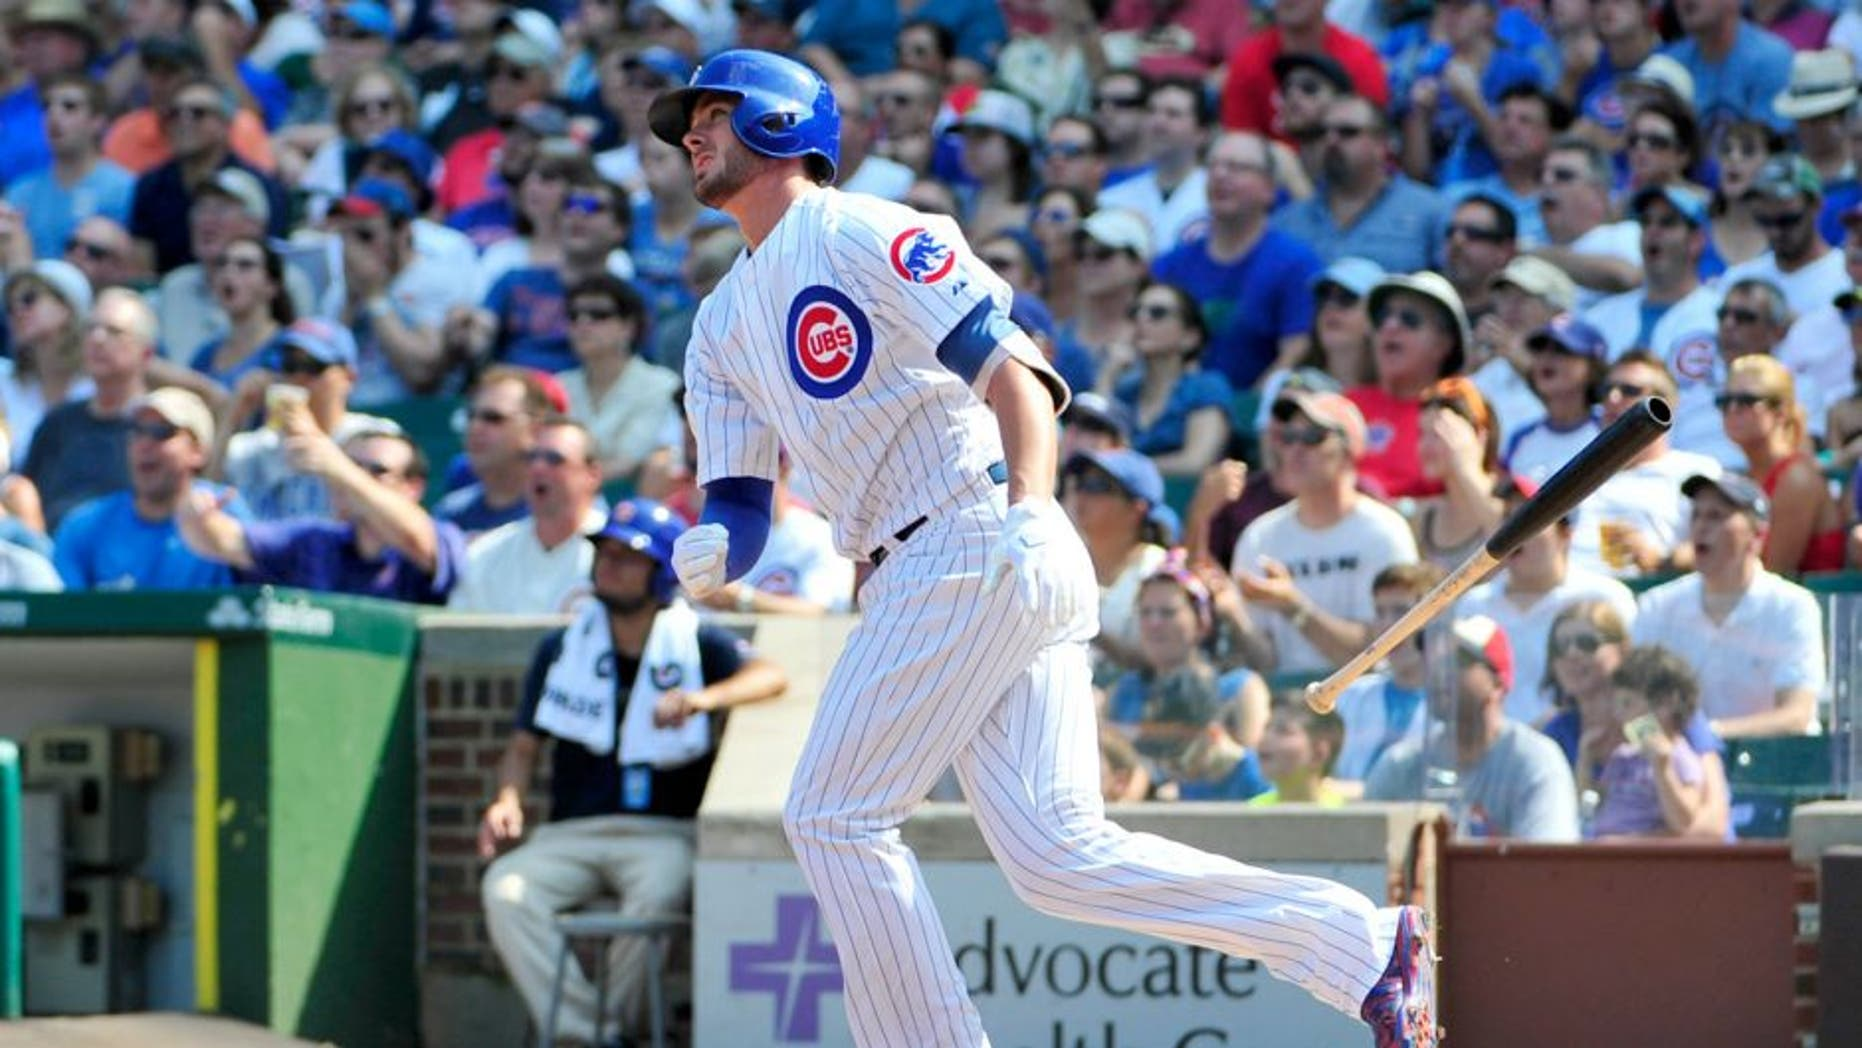 CHICAGO, IL - SEPTEMBER 06: Kris Bryant #17 of the Chicago Cubs hits a home run against the Arizona Diamondbacks during the fifth inning on September 6, 2015 at Wrigley Field in Chicago, Illinois. (Photo by David Banks/Getty Images)